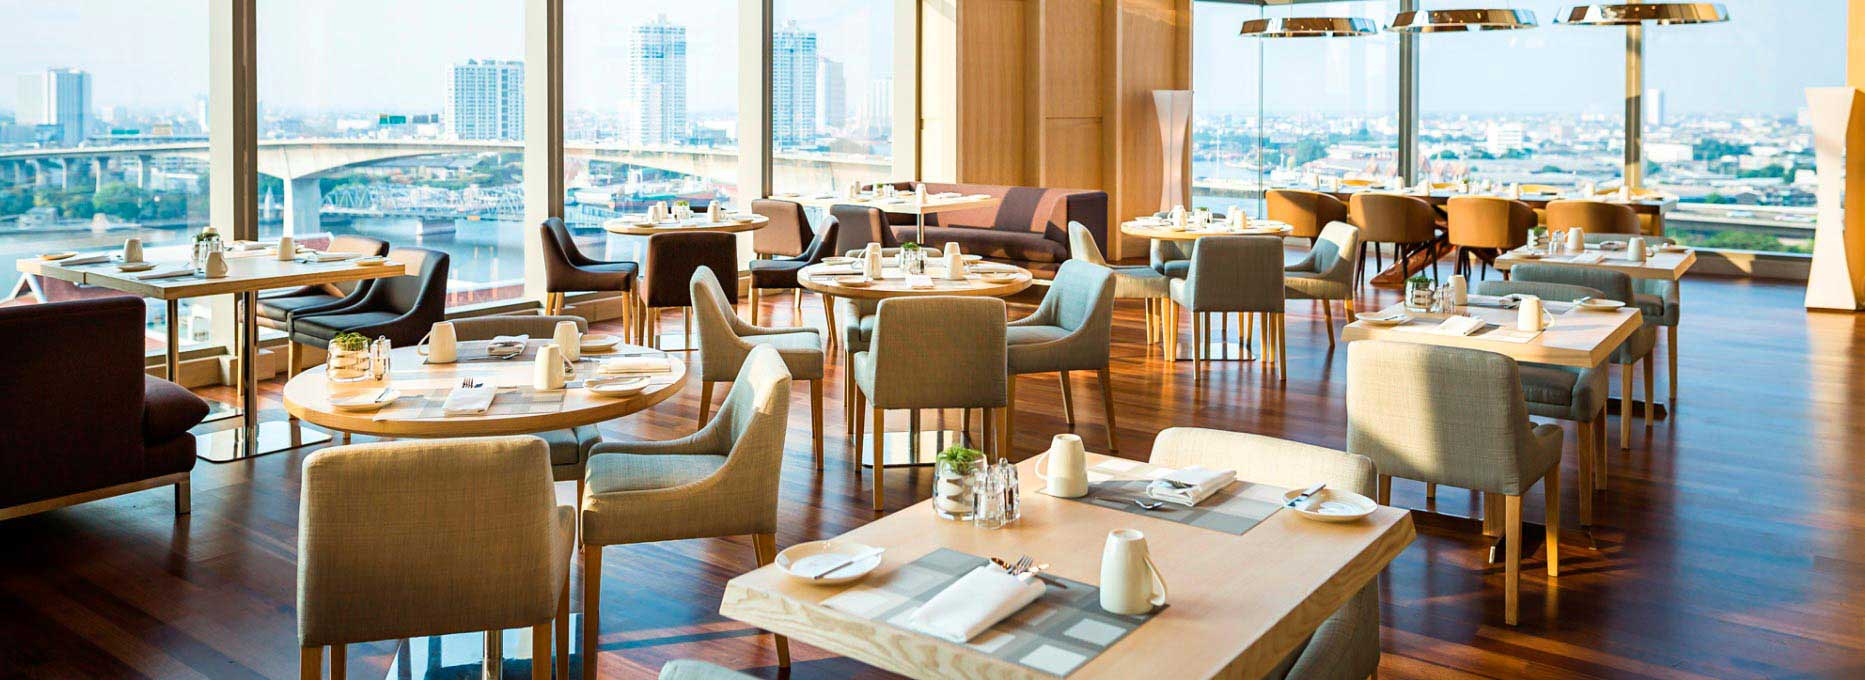 Weekday International Buffet Lunch At Avani Riverside